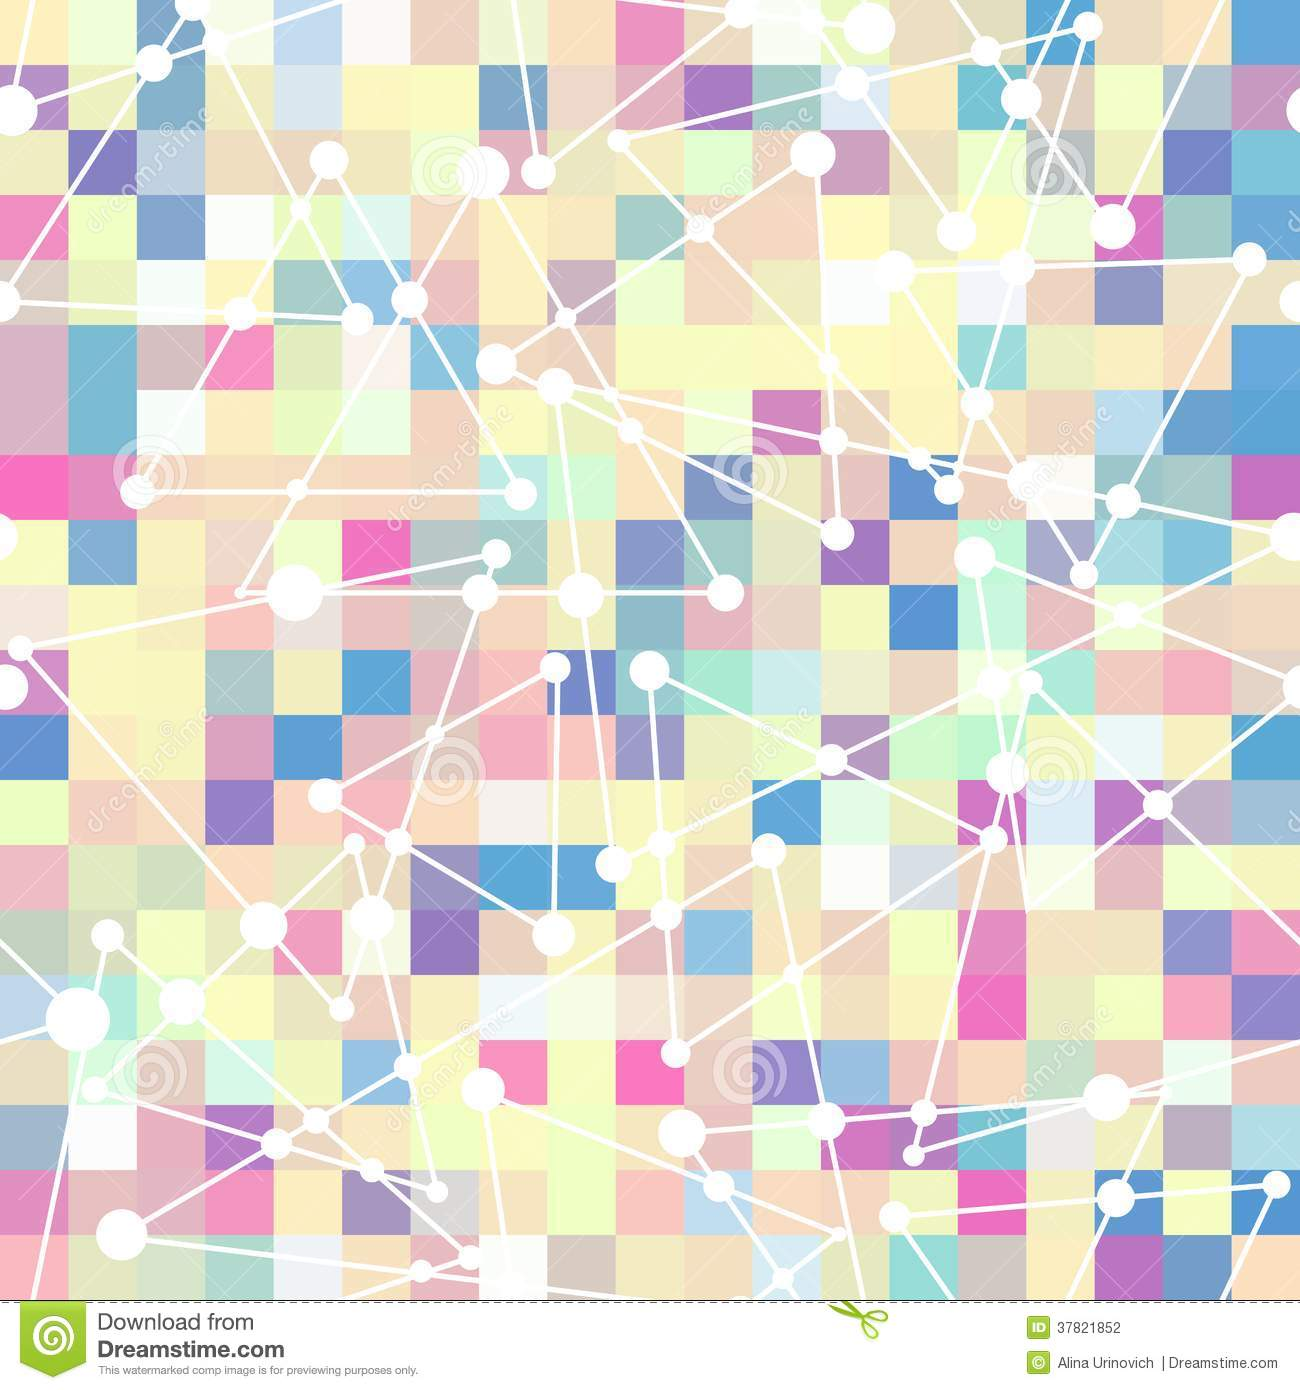 Geometric pattern of color square and triangle